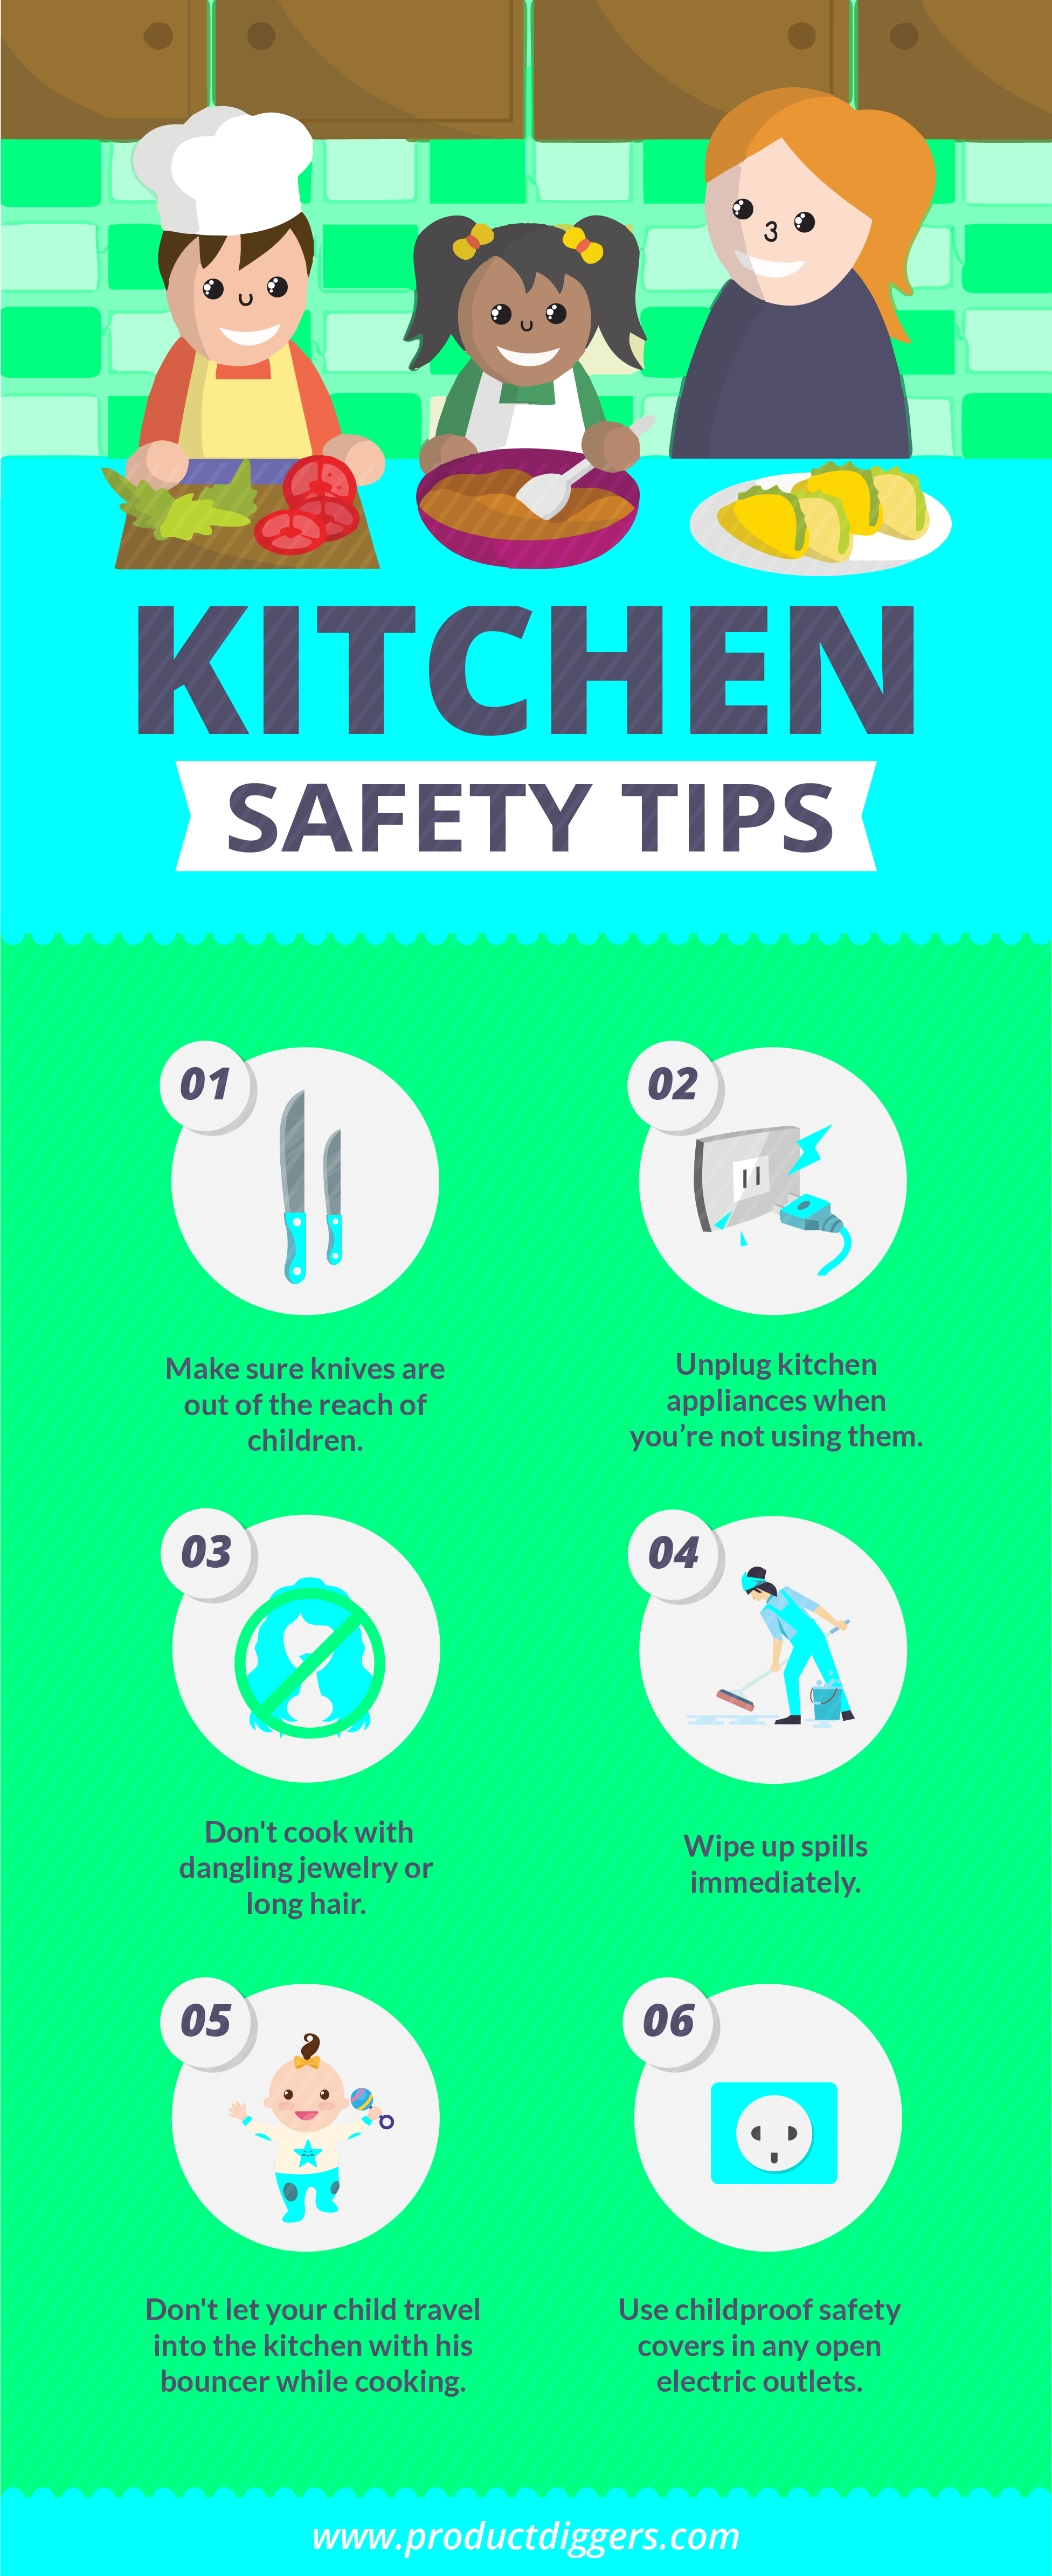 Food and Kitchen Safety; A Guide for the Home Cook